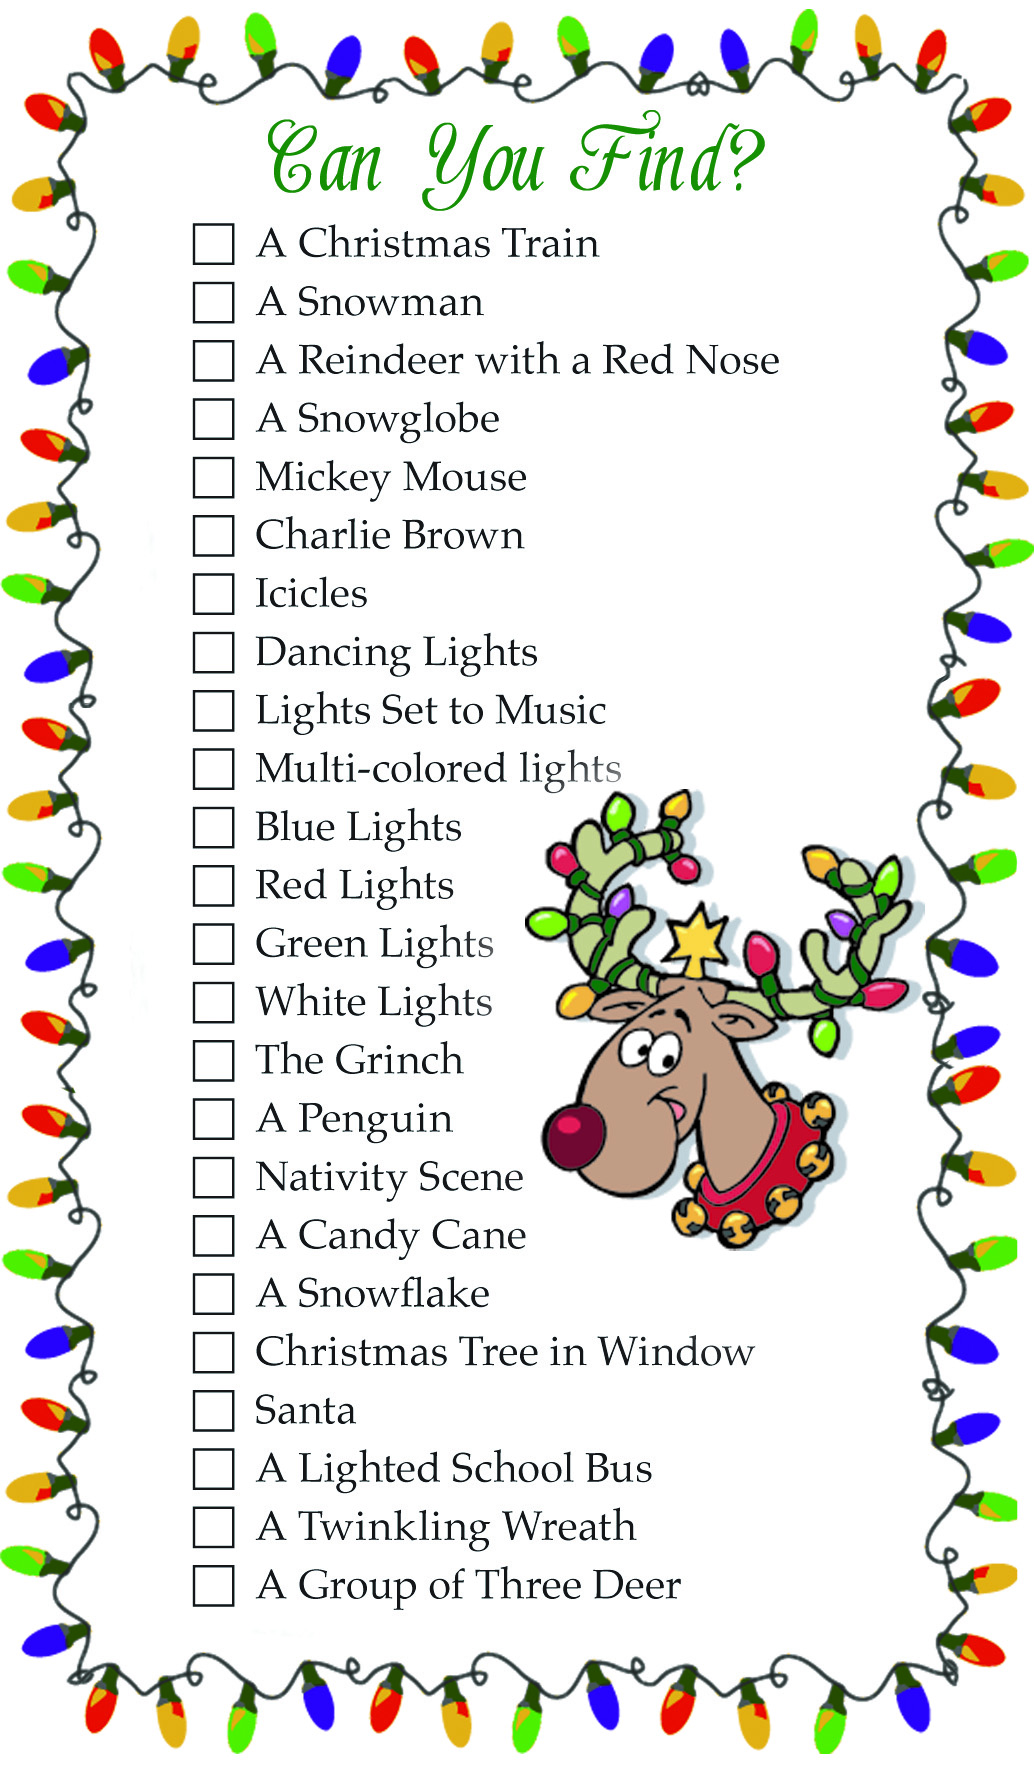 Christmas Lights Scavenger Hunt List | Elaine Harper Real Estate